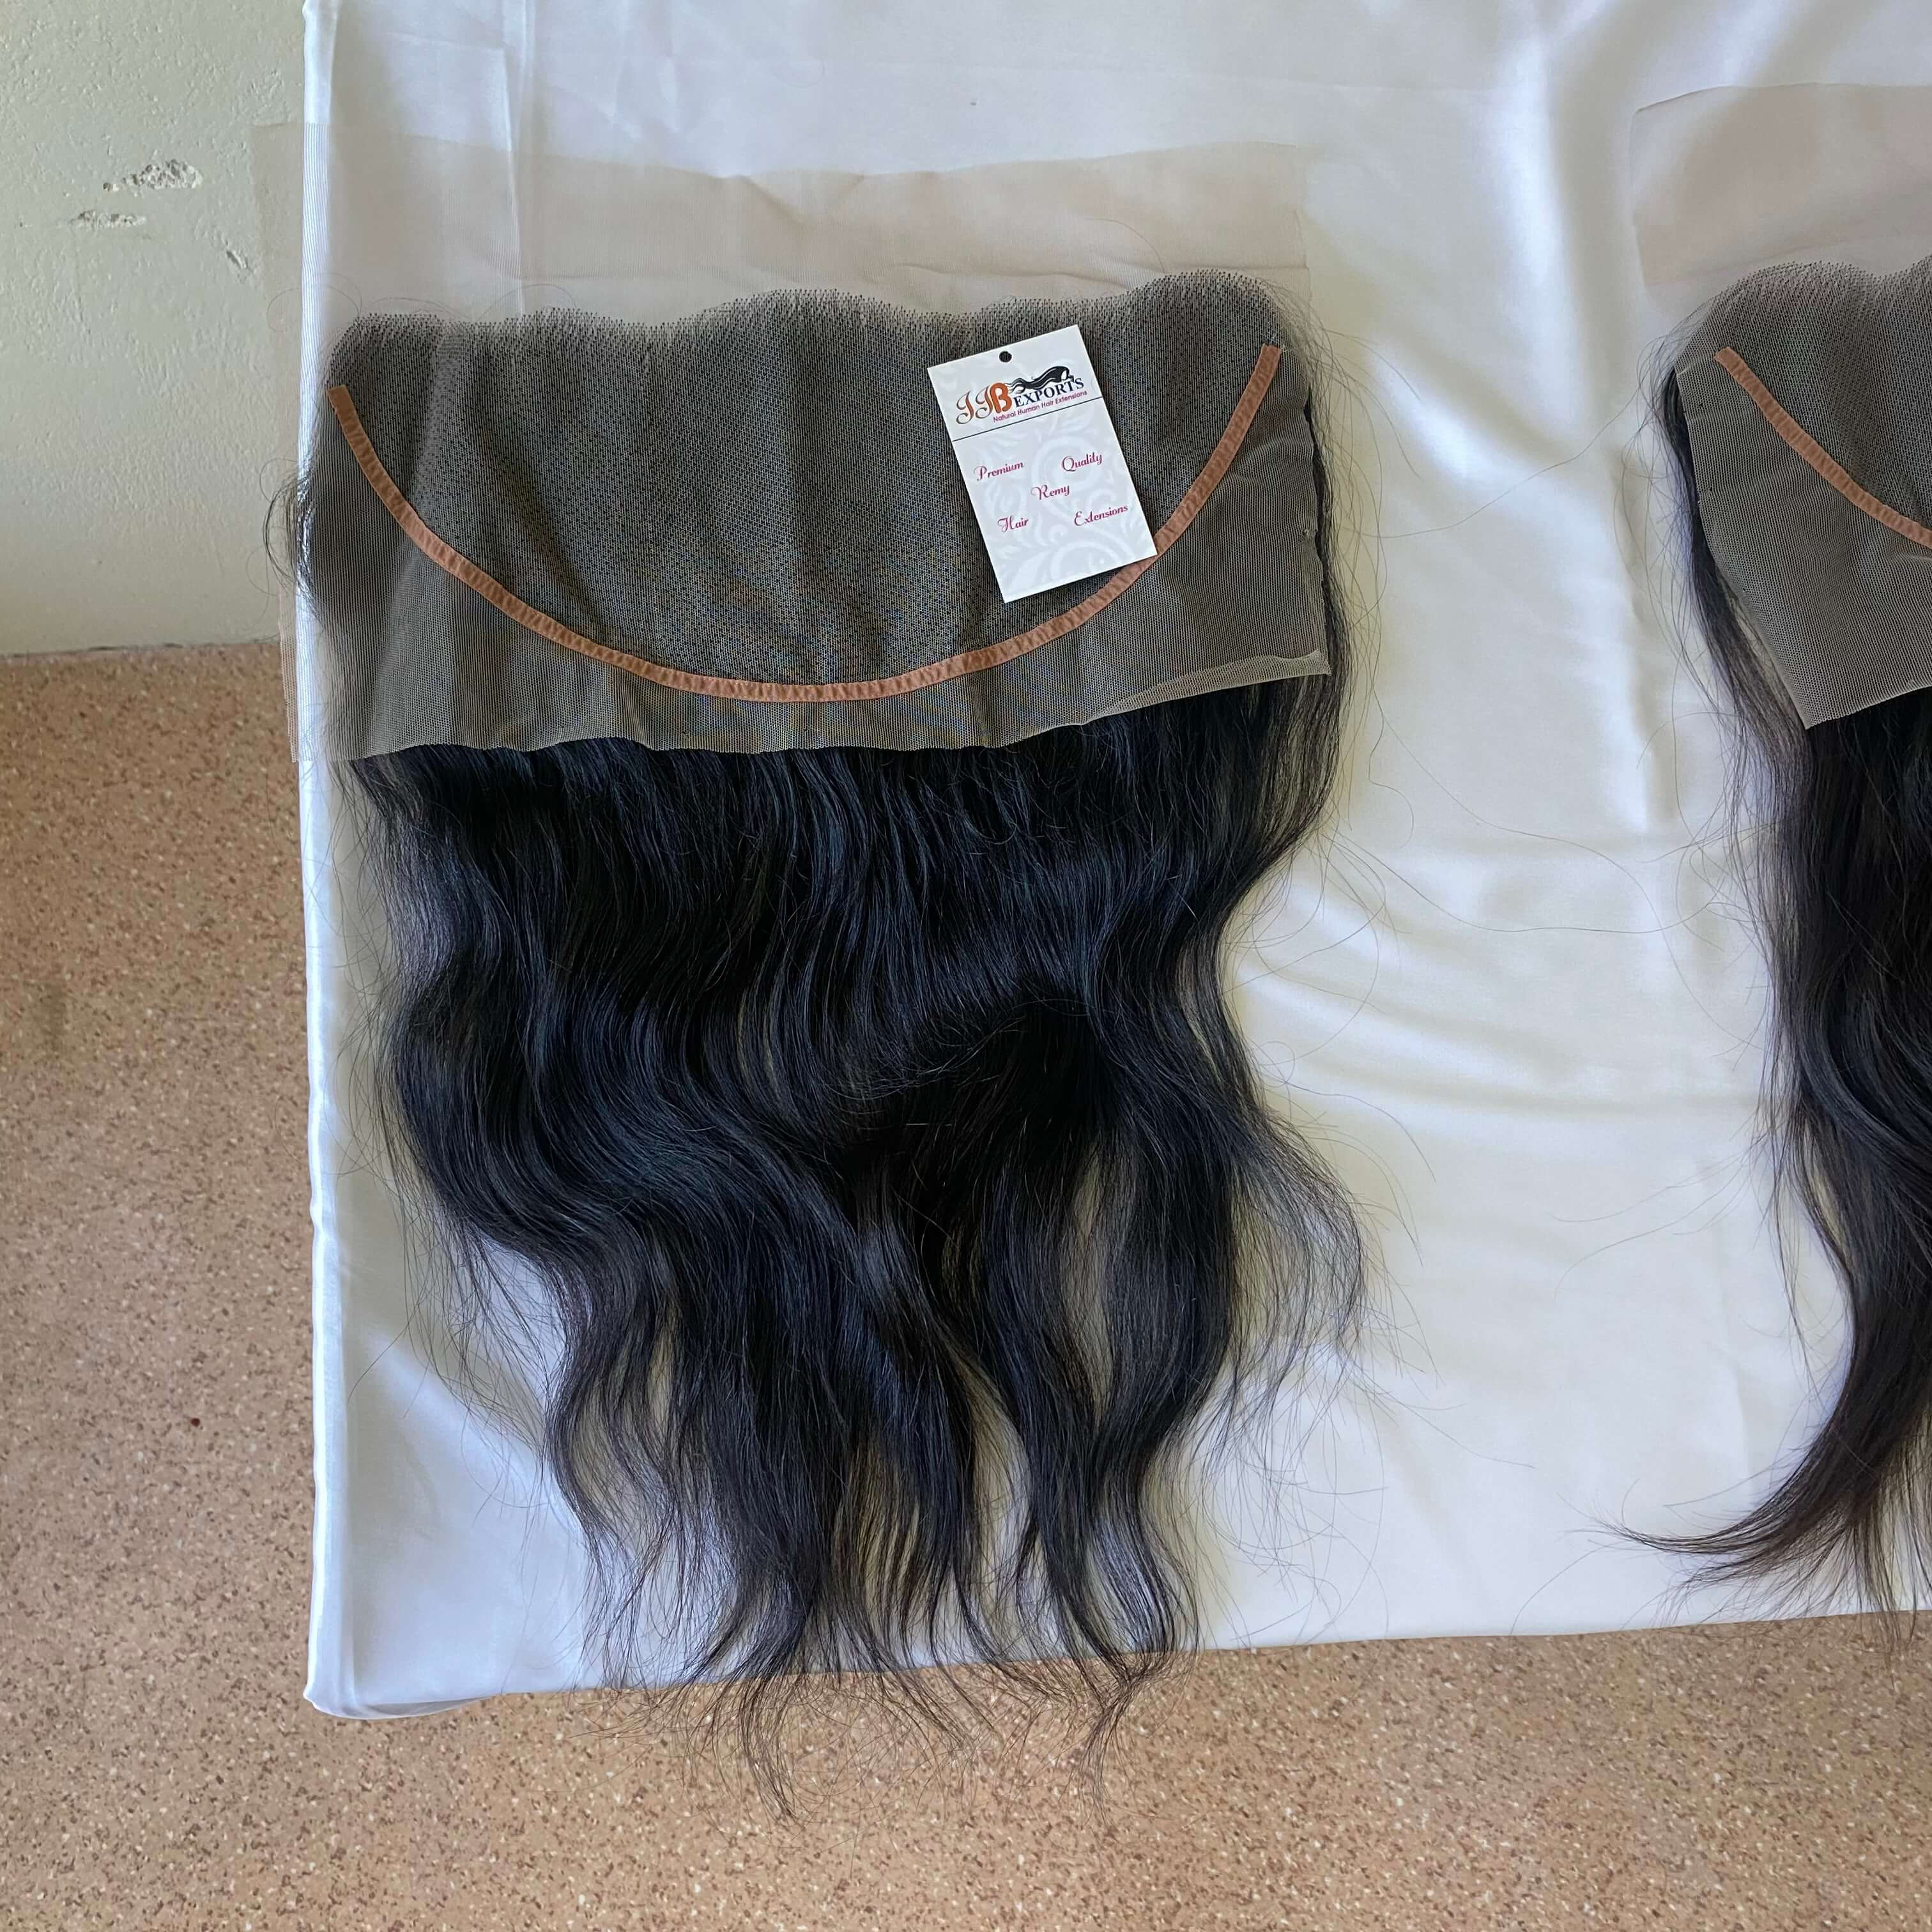 Hd Thin Lace Closure 4x4 Lace Frontal 13x4 Natural Virgin Indian Human Hair With Bundle